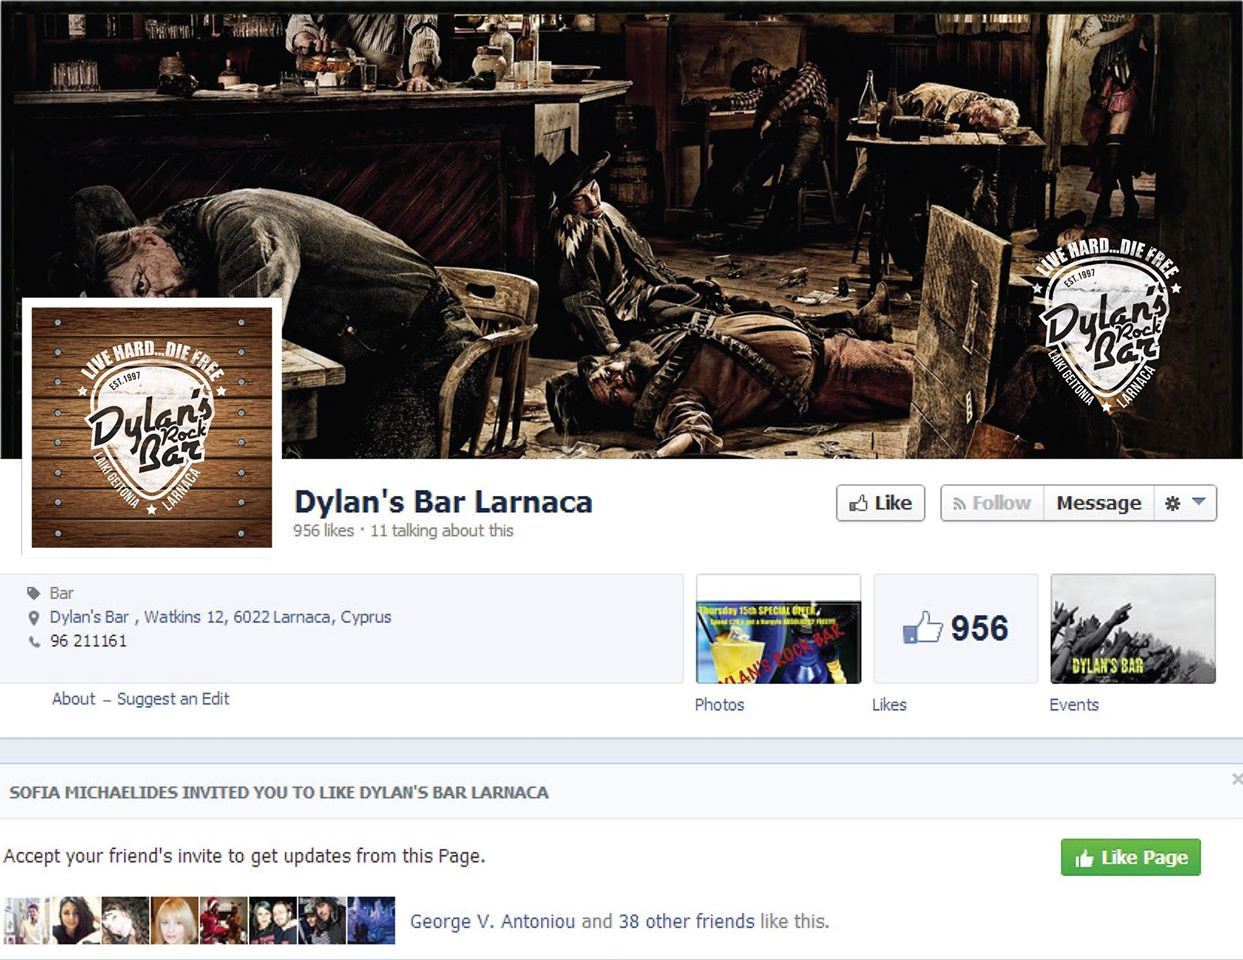 Dylan's Bar Larnaca Cover Image on XploreCyprus